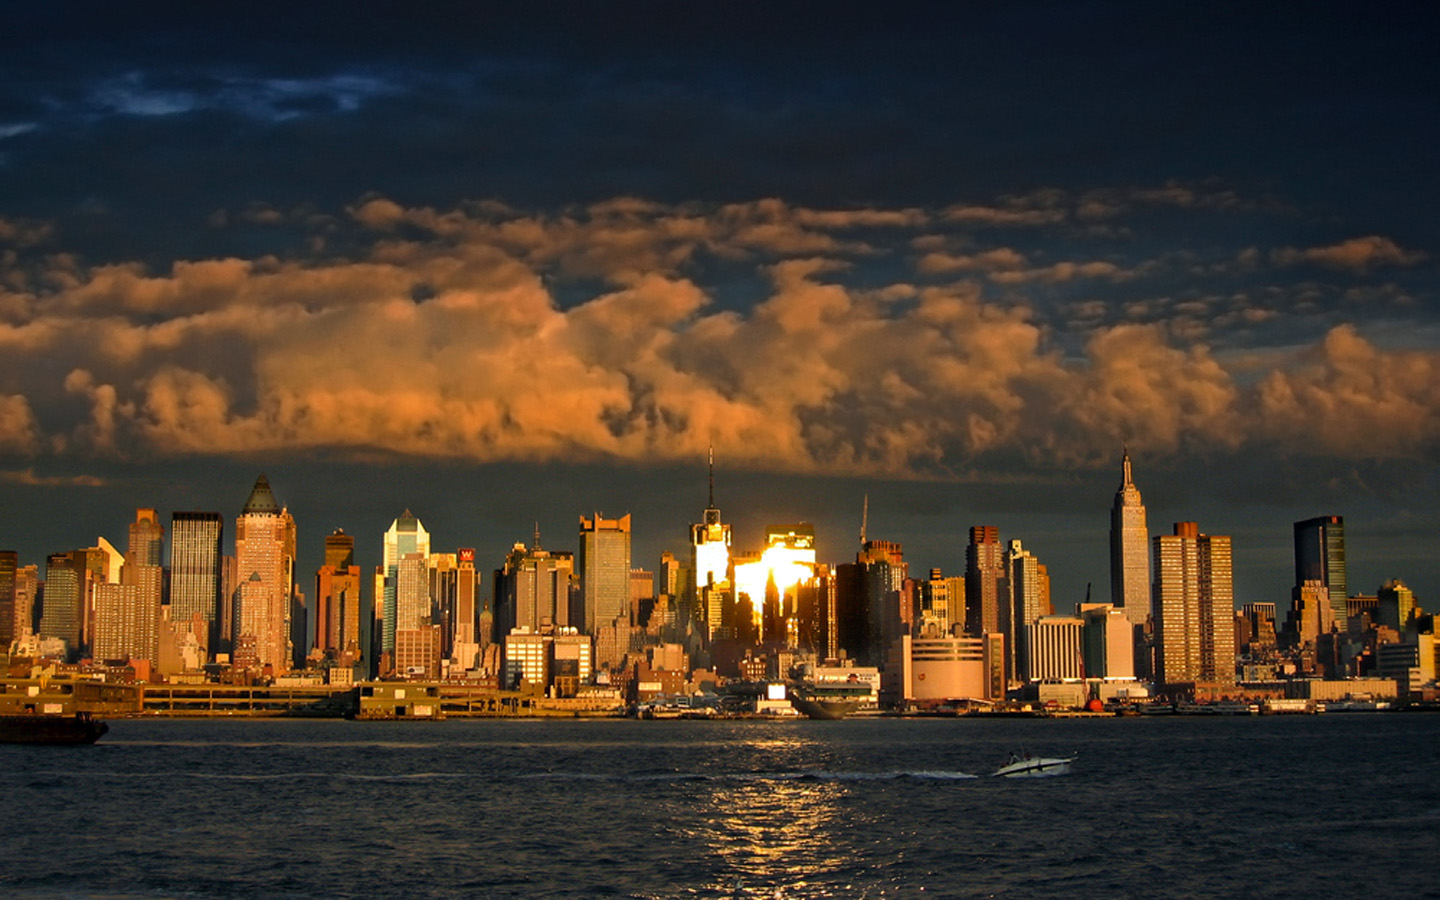 New York City Skyline At Night Wallpaper Space Wallpapers In Toplist 1440x900